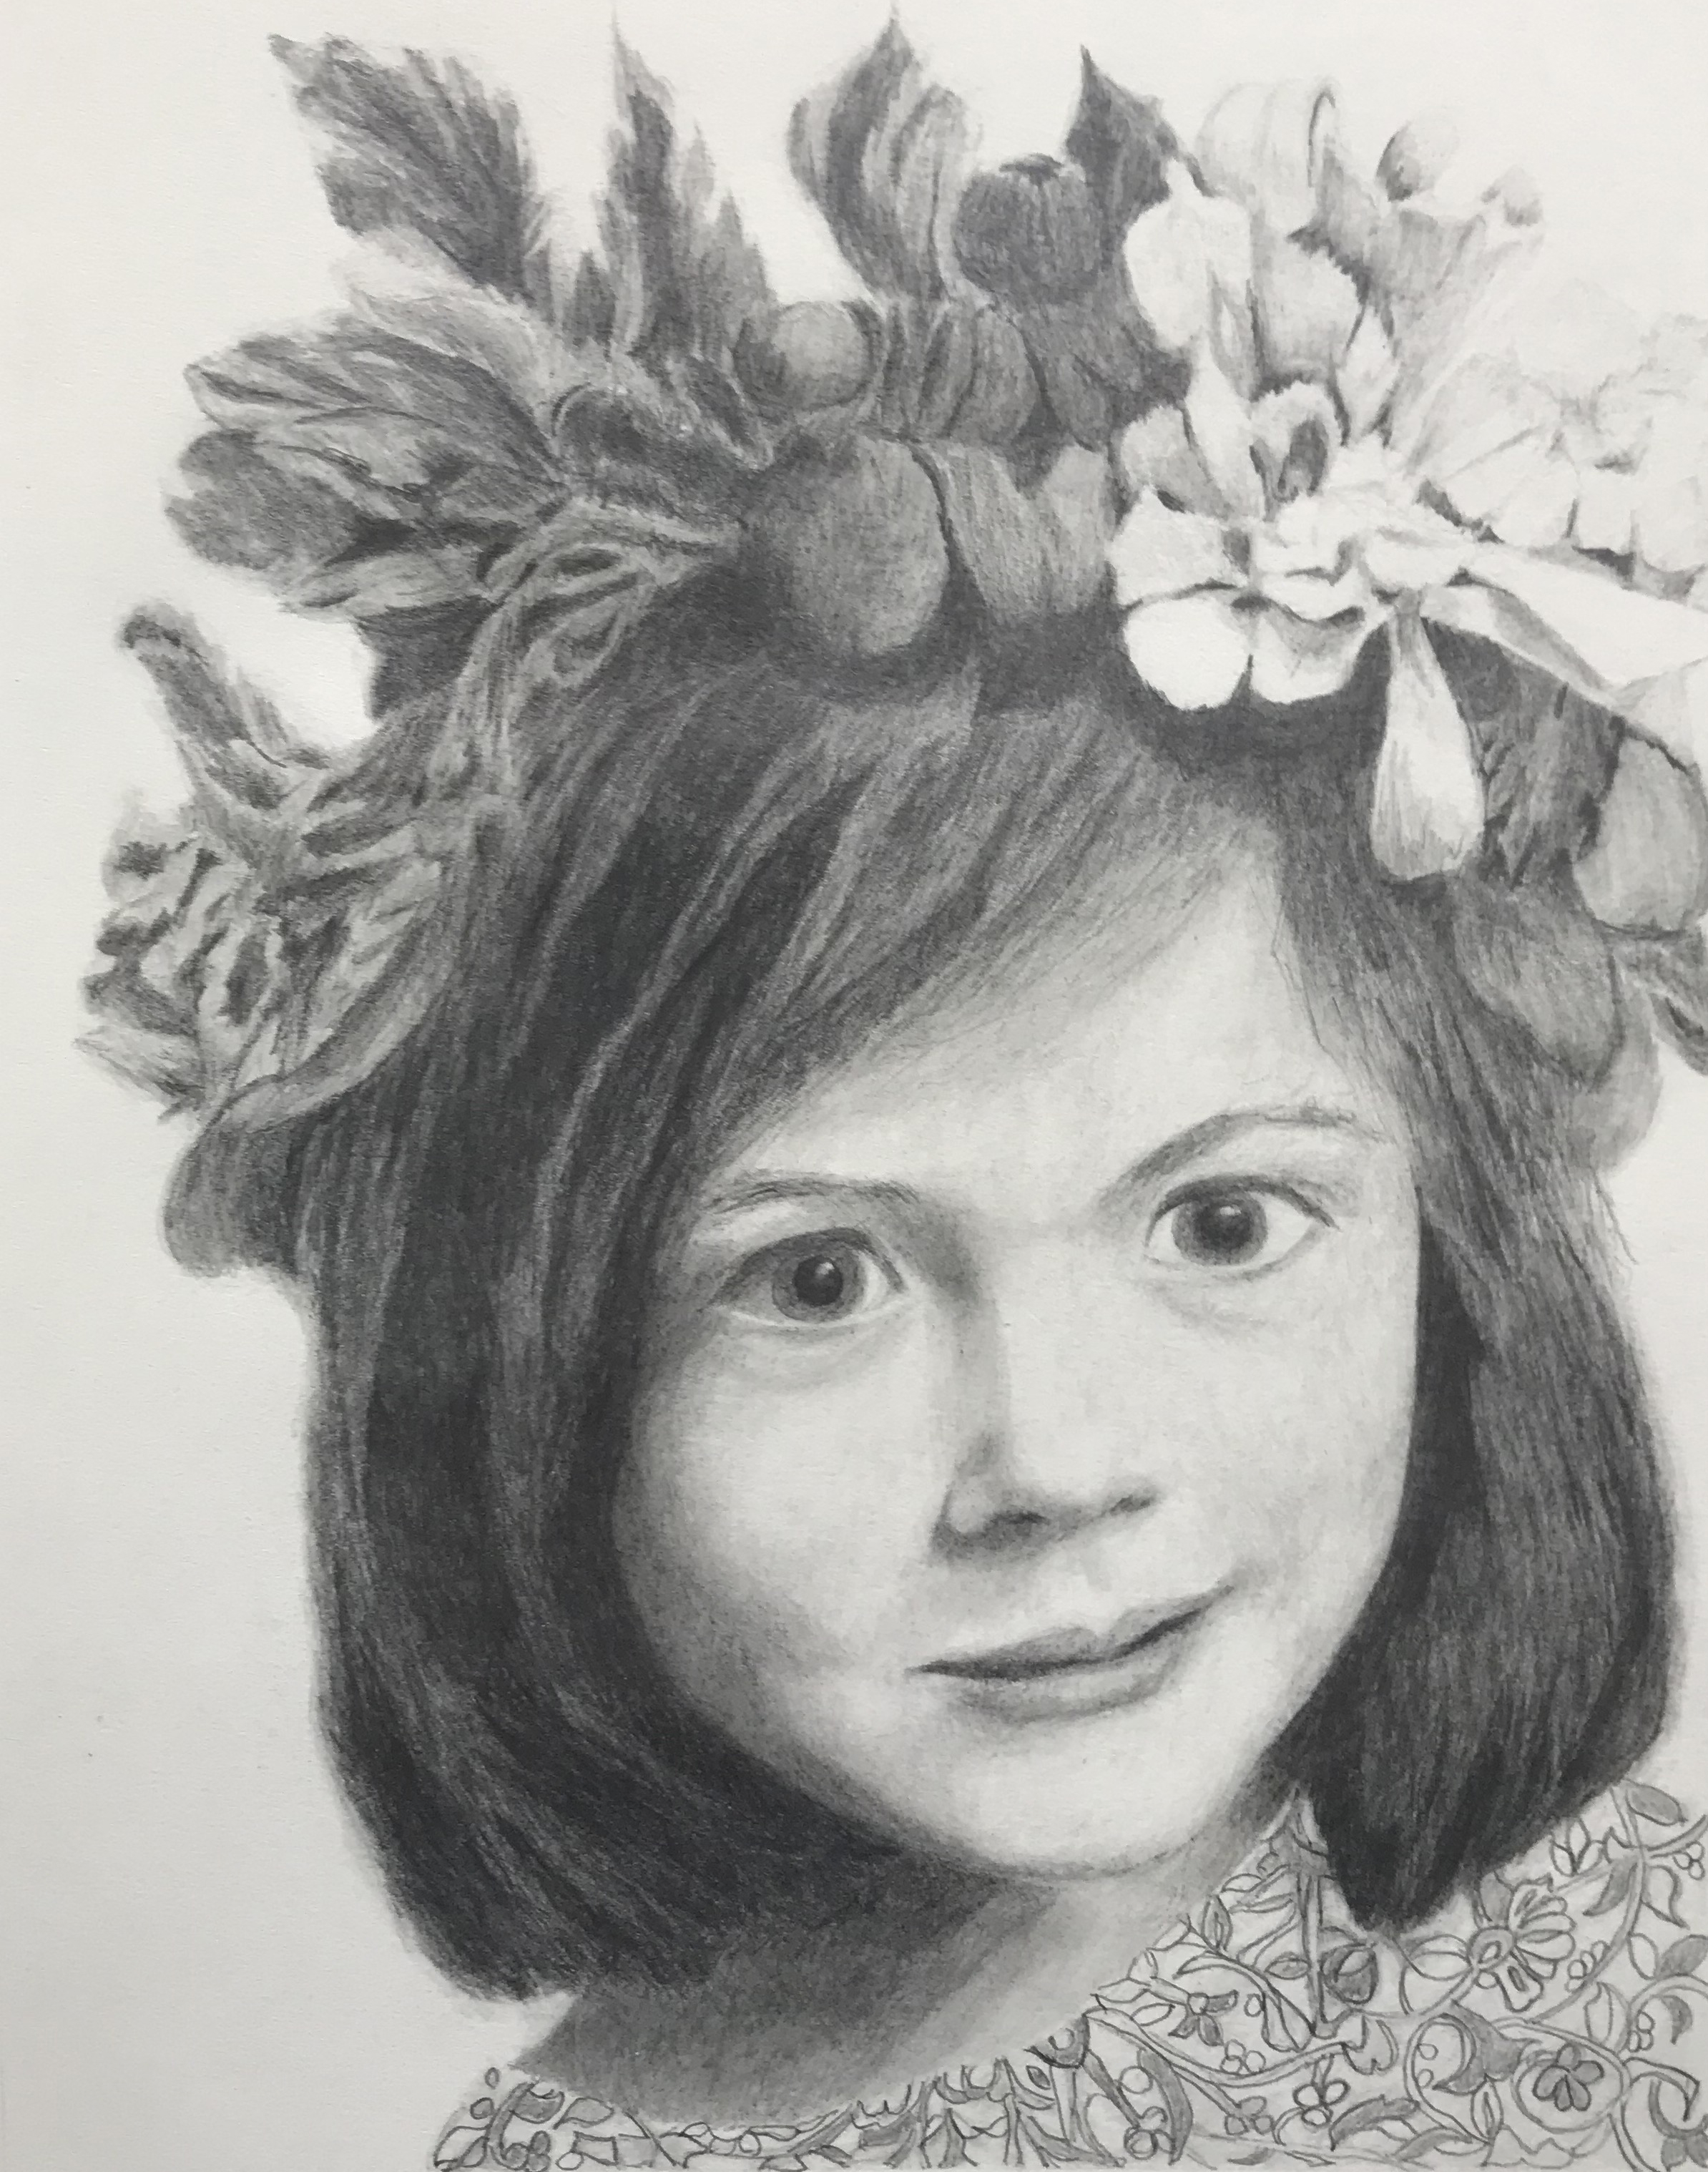 Graphite drawing of a young girl, testimonial from student, Susan Westfall of RL Caldwell Studio